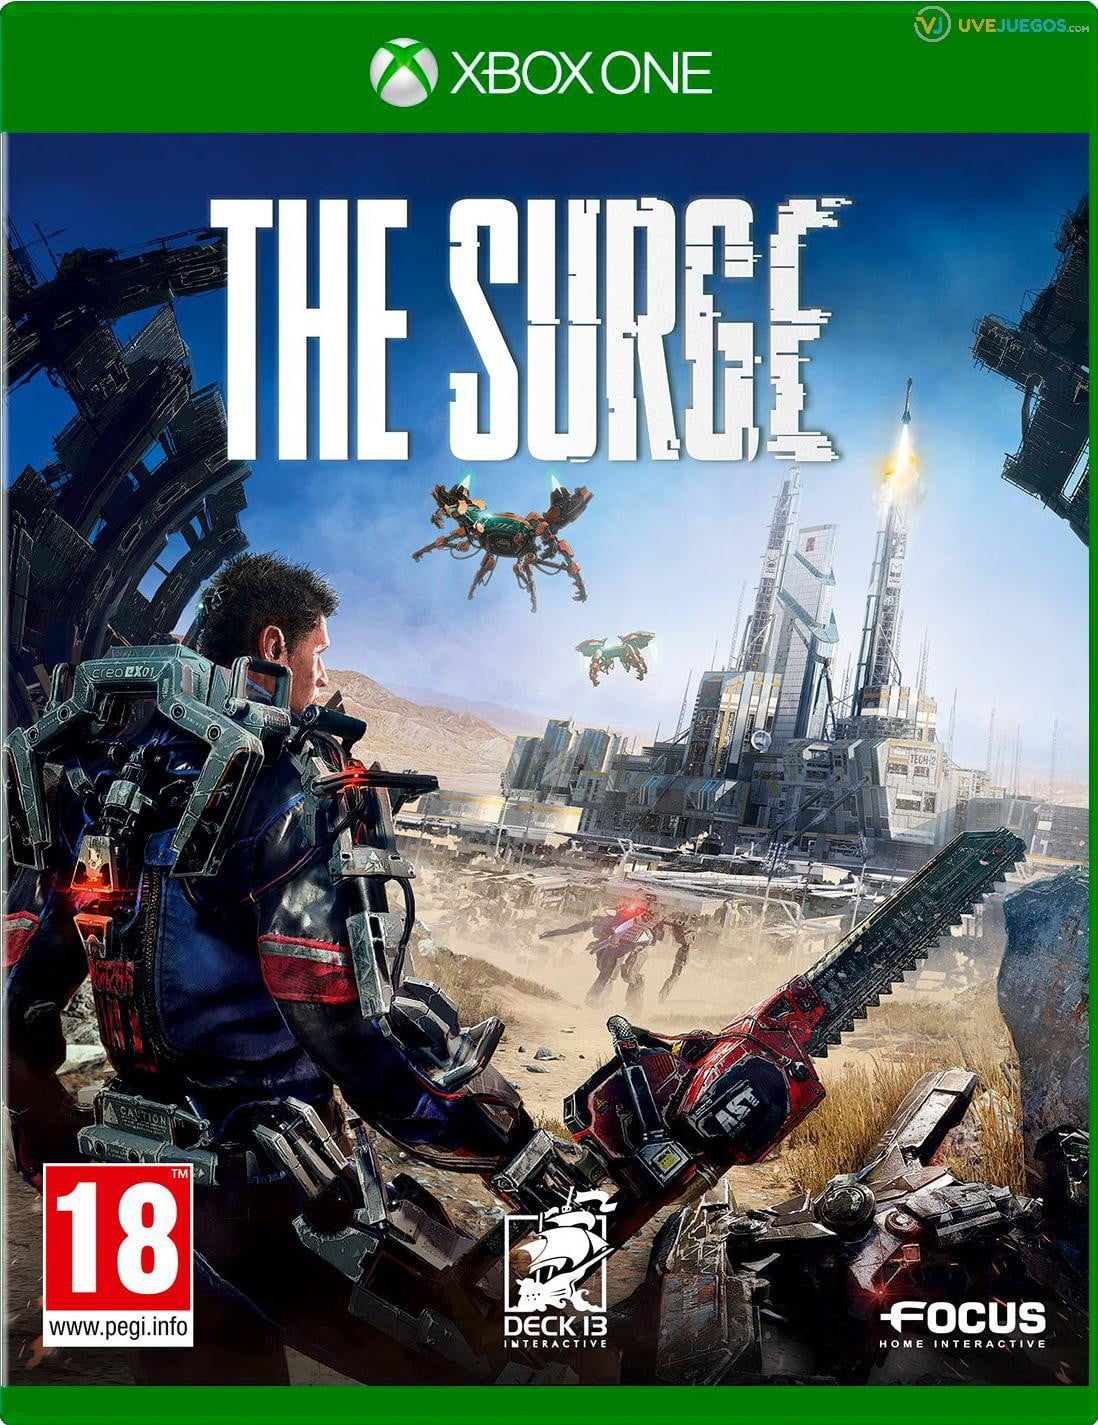 Buy The Surge (XBOX ONE) XBOX ONE in Egypt - Shamy Stores